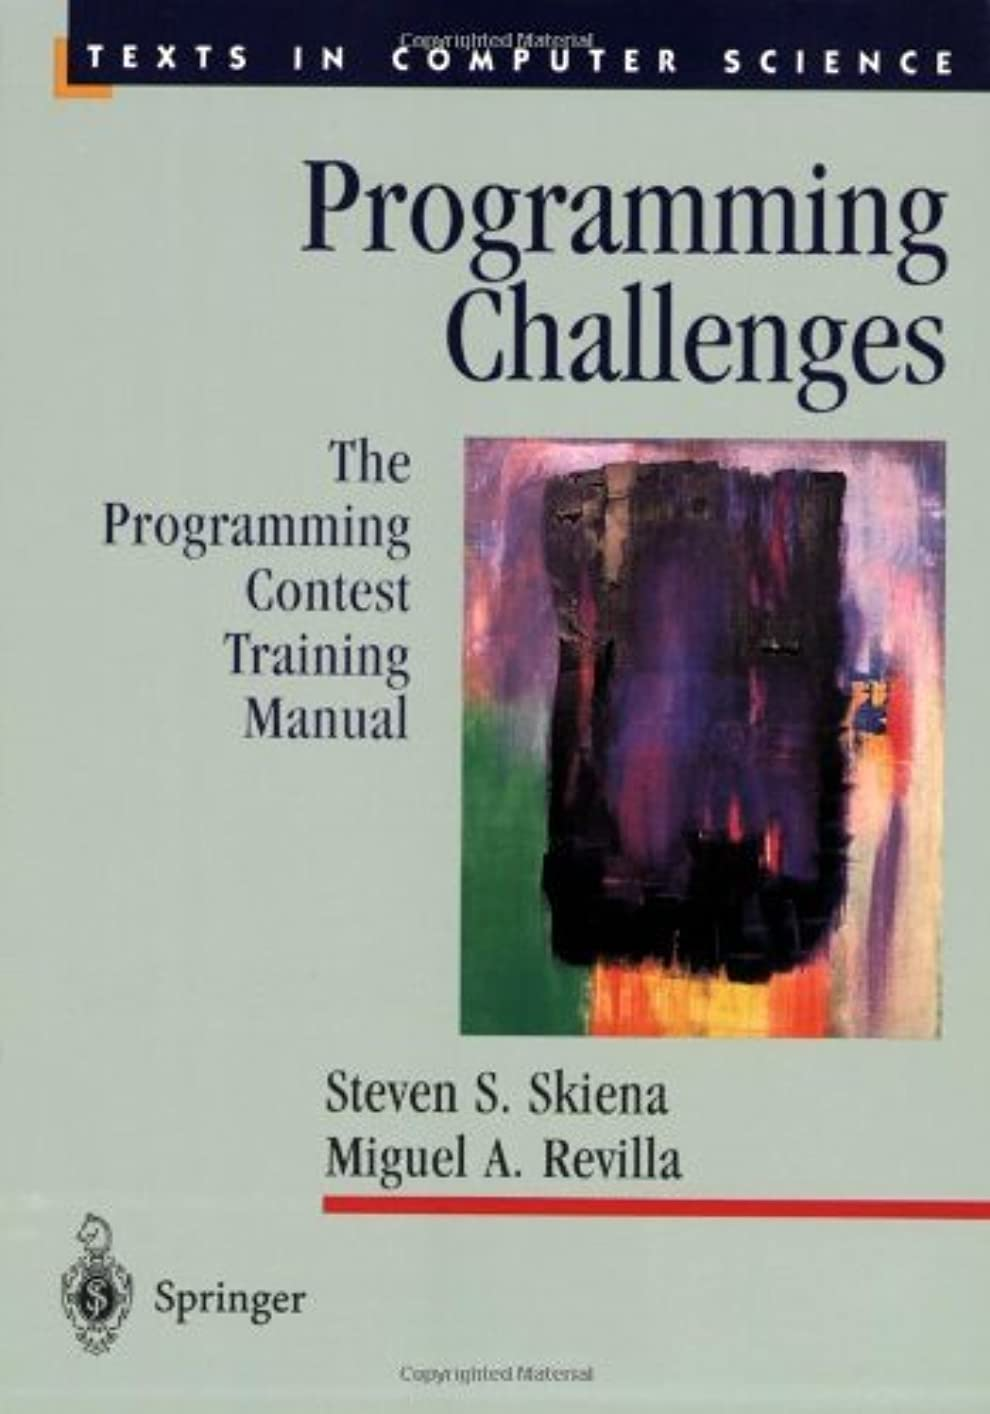 船堤防ハチProgramming Challenges: The Programming Contest Training Manual (Texts in Computer Science) (English Edition)